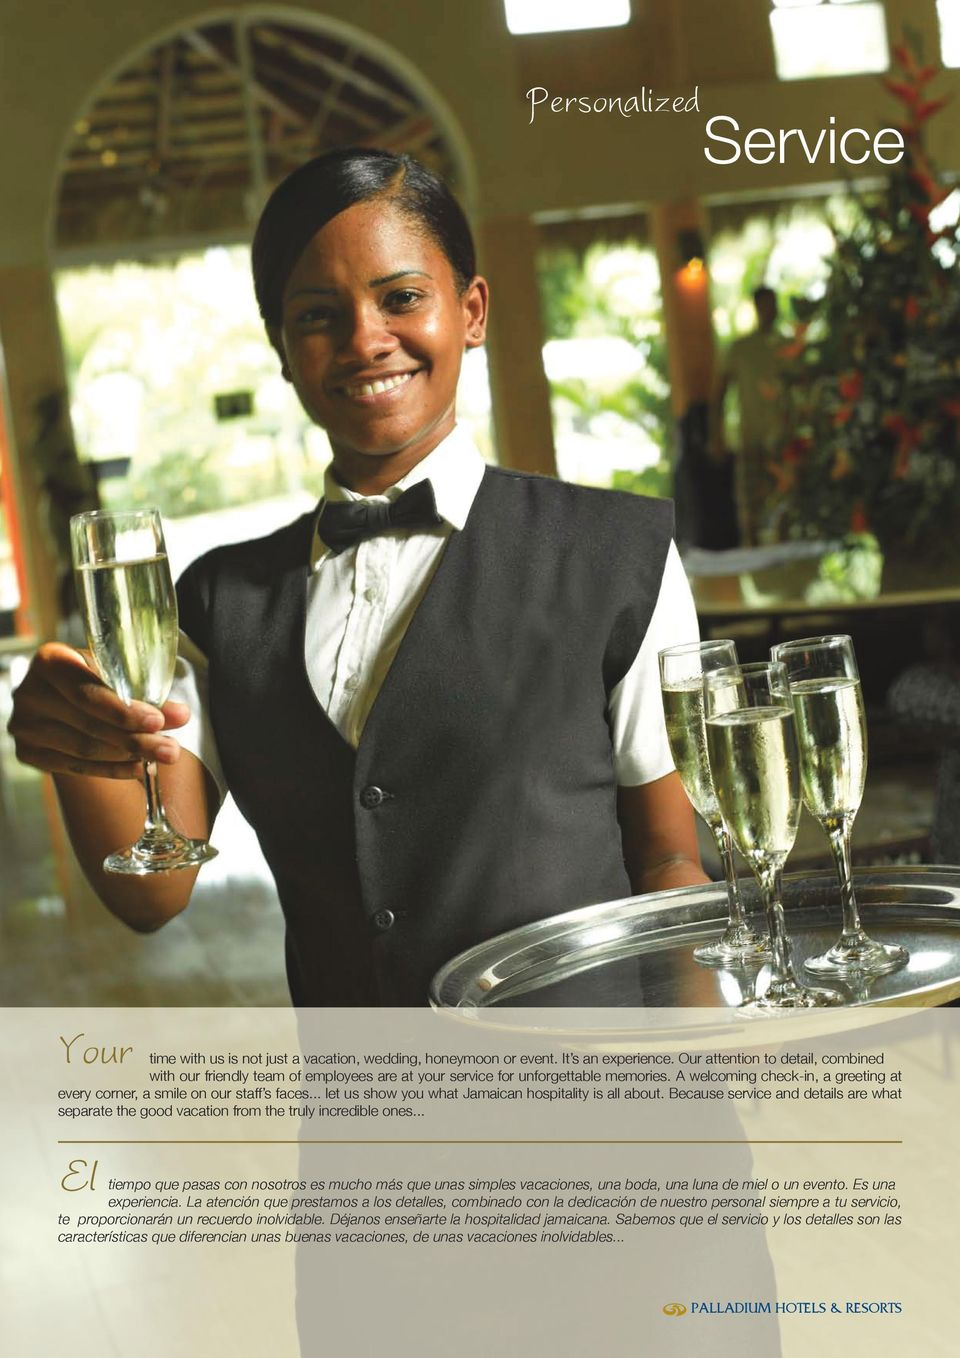 .. let us show you what Jamaican hospitality is all about. Because service and details are what separate the good vacation from the truly incredible ones.